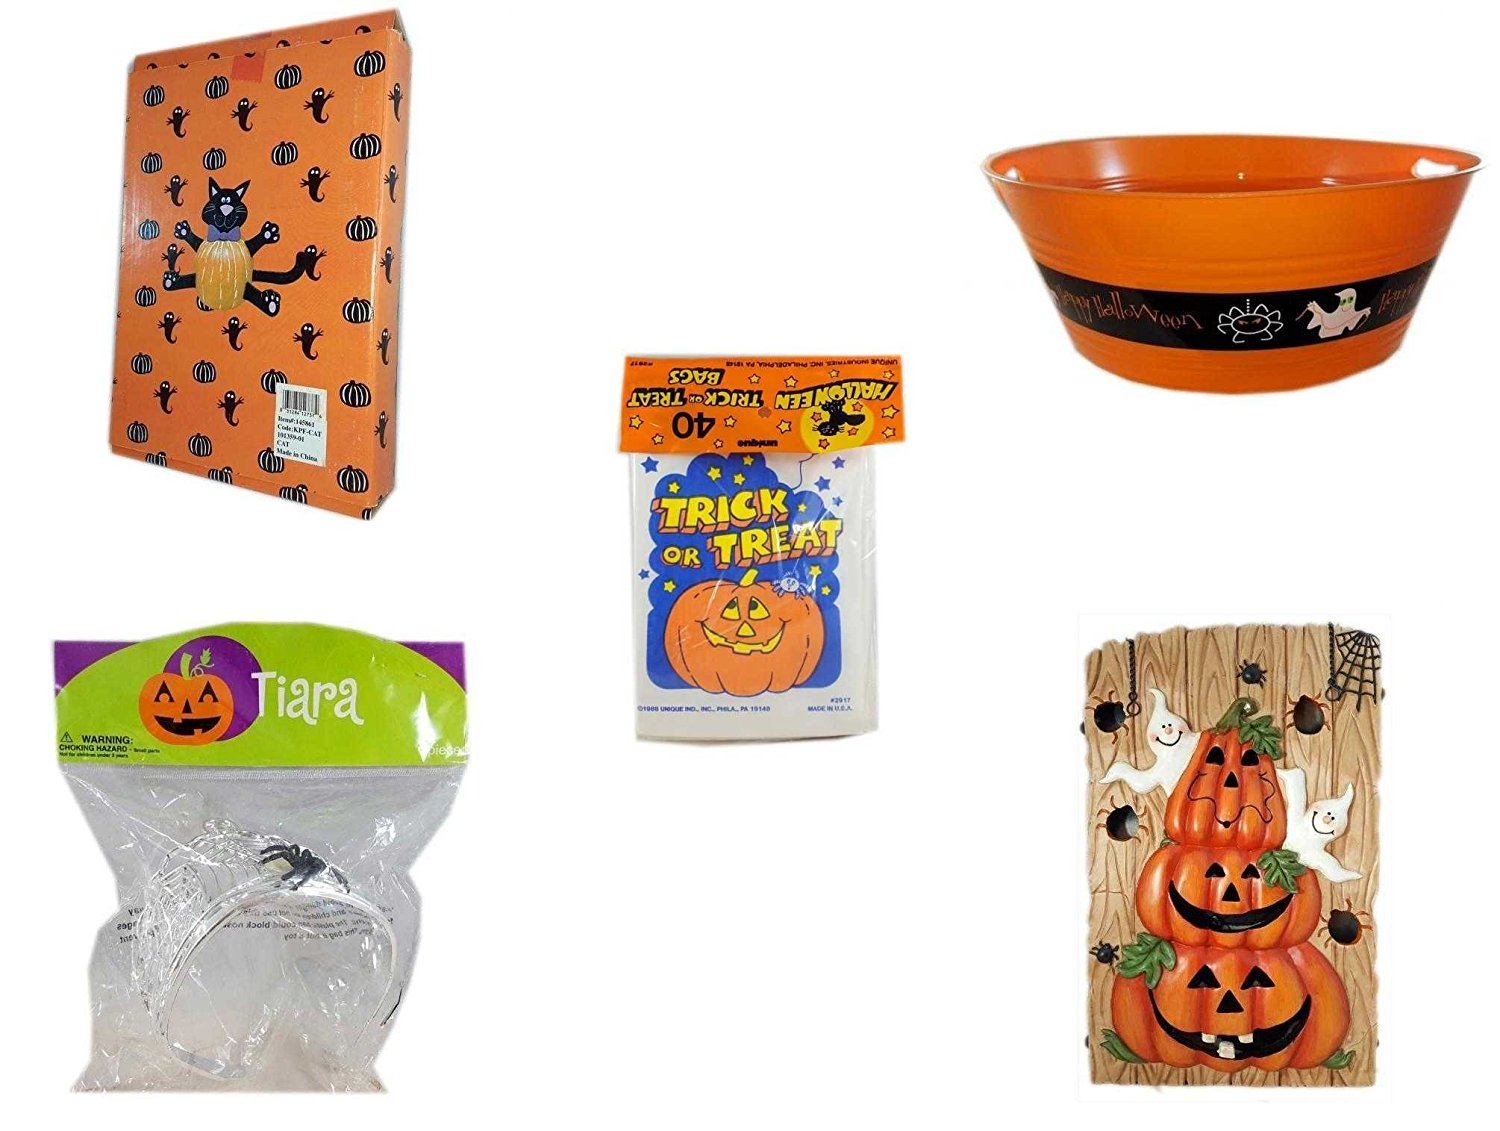 "Halloween Fun Gift Bundle [5 piece] - Halloween Cat Pumpkin Push In 5 Piece Head Arms Legs - 17.75 Inch Orange ""Happy Halloween"" Party Tub - Halloween Trick or Treat Bags 40/ct - Halloween Spider T"